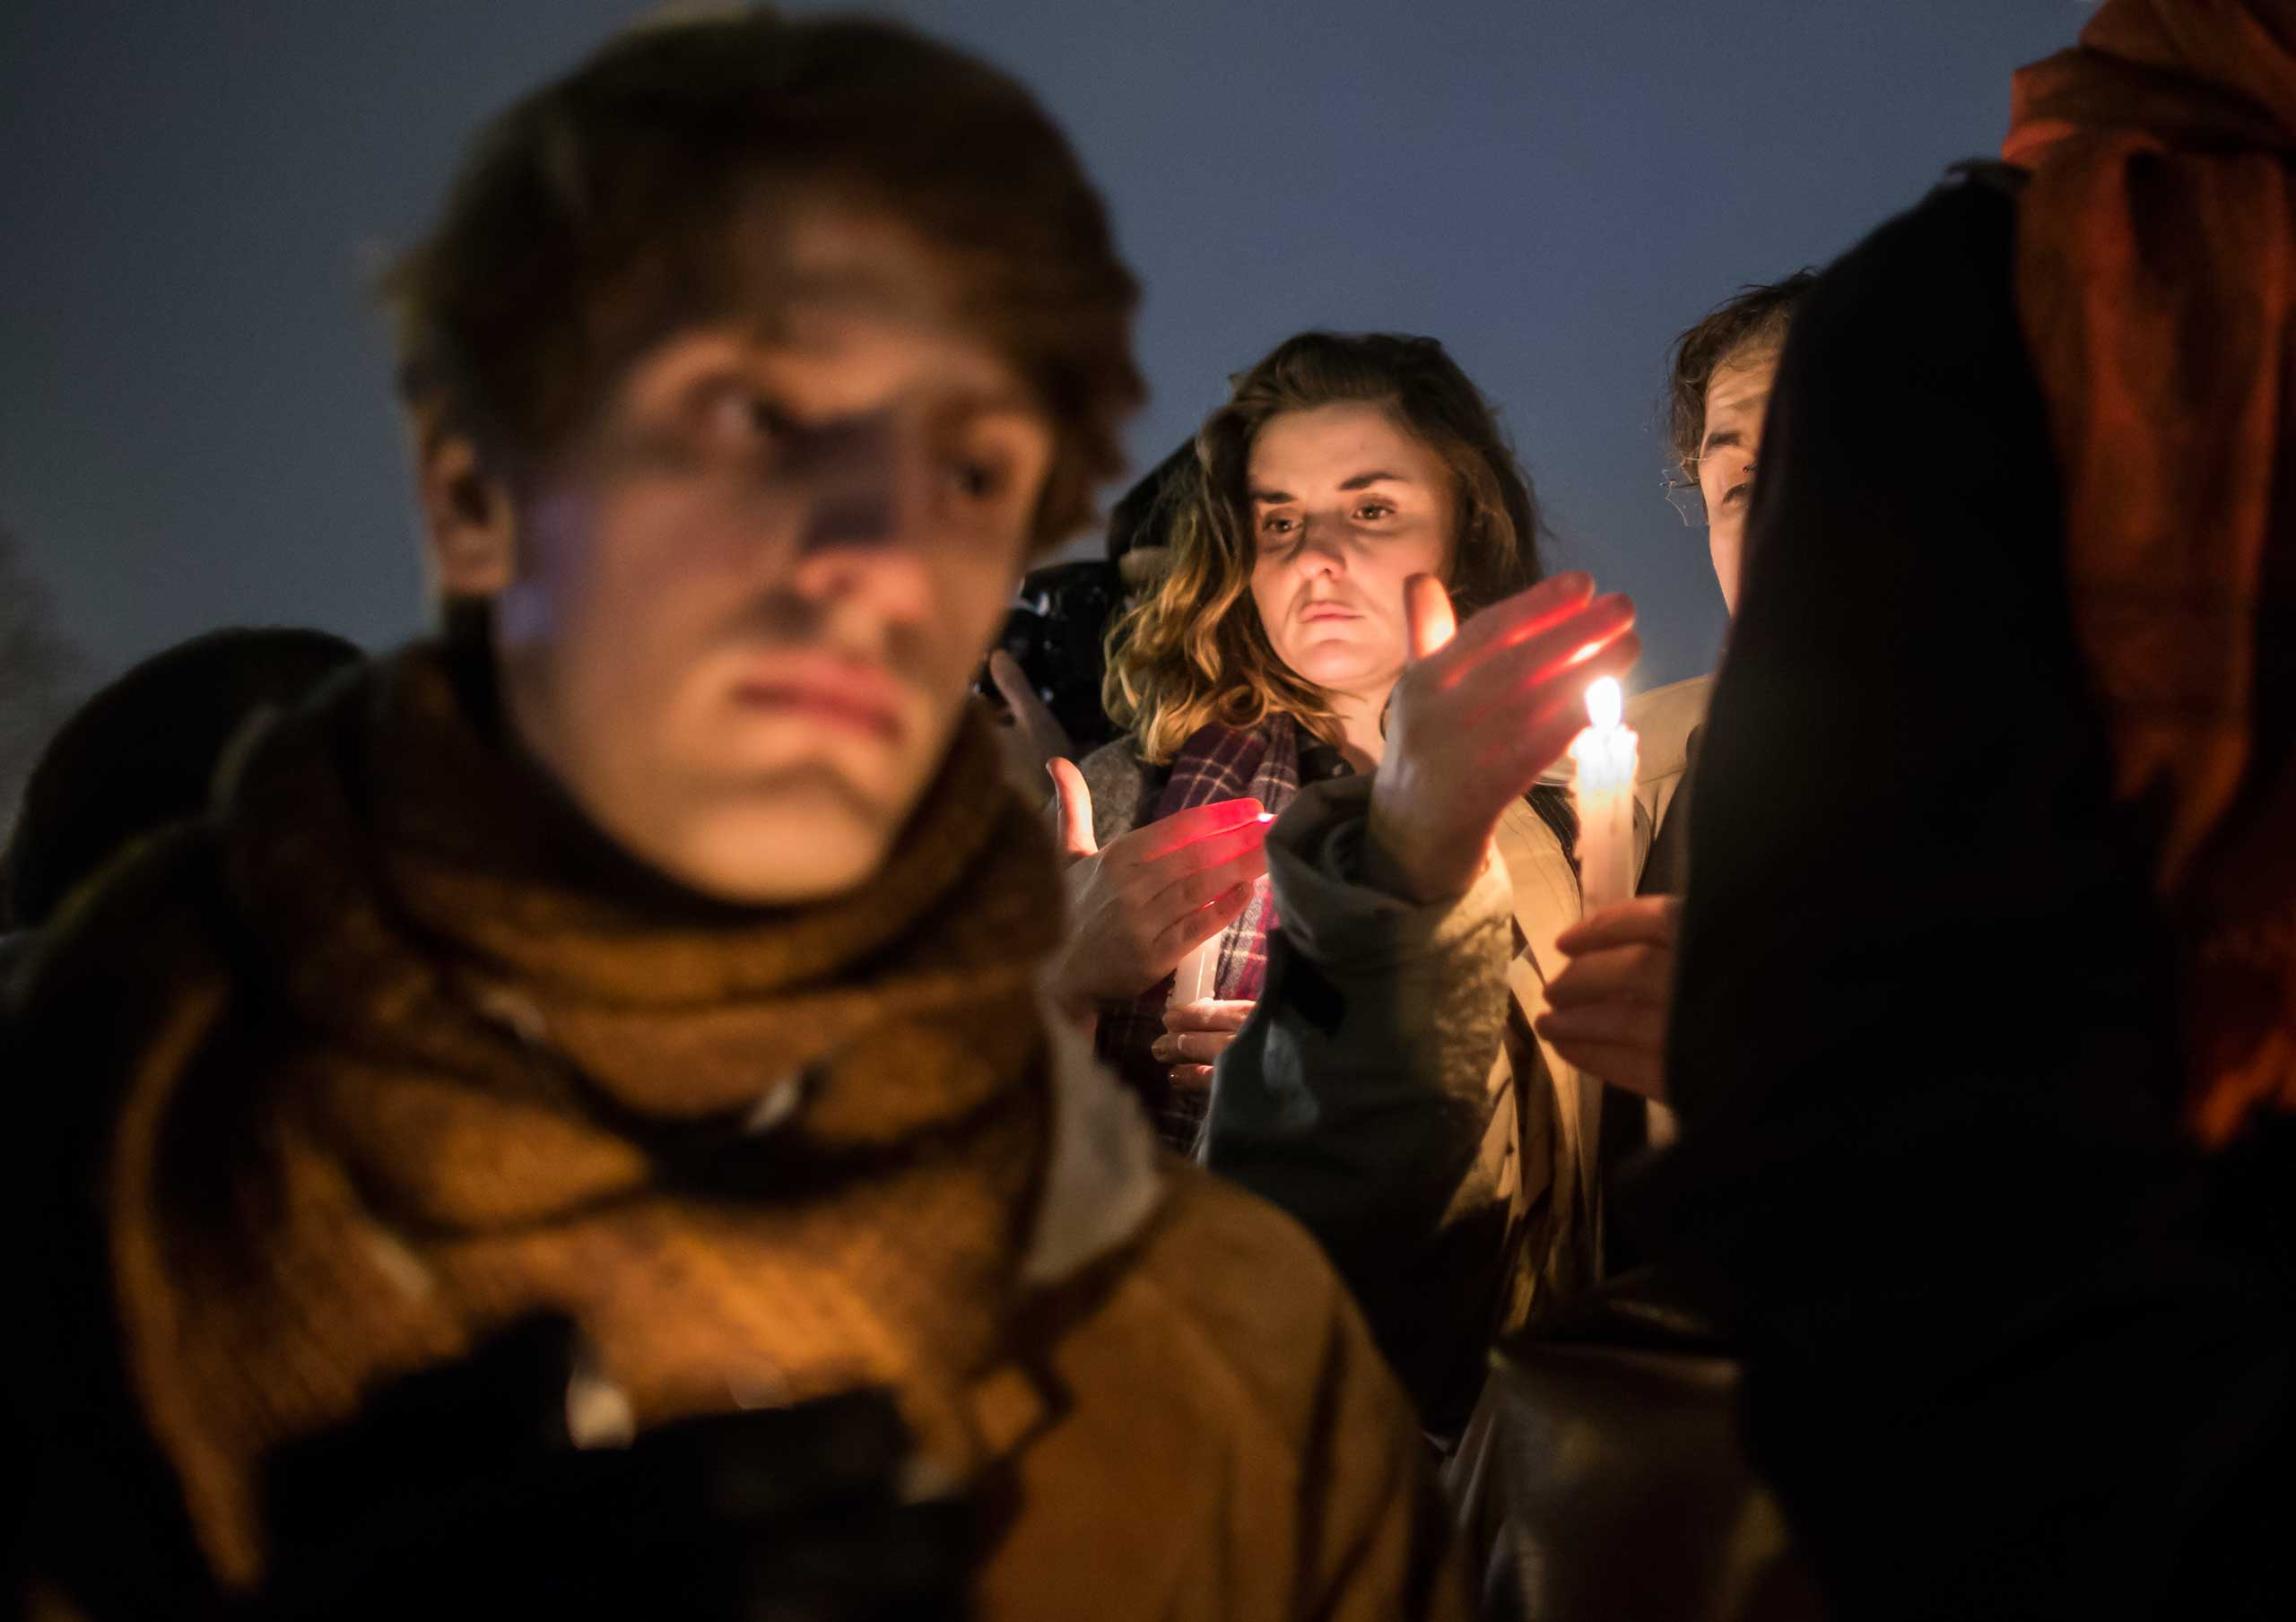 People hold a candle-light vigil as thousands gather silently on Place de la Republique in central Paris hours after the attack by masked gunmen on the Charlie Hebdo headquarters in Paris on  Jan. 7, 2015